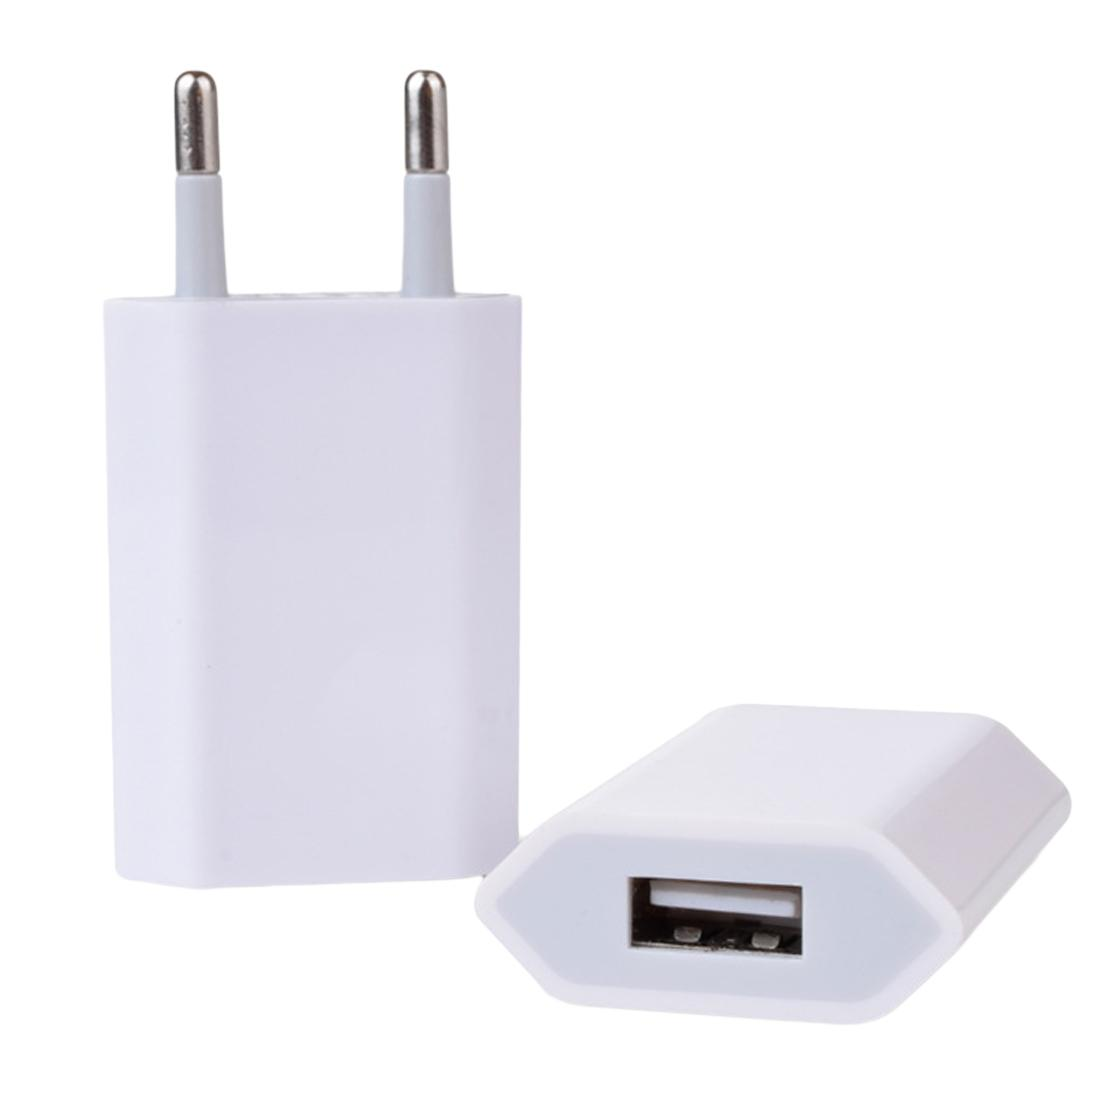 Eu Usb Wall Charger For Apple Iphone 6 6s 7 Plus Ipod Colorful 4g 4s Plug Ac Adapter Iphone4 5s 5g Wireless Phone Charging Power Bank 2600 Mah